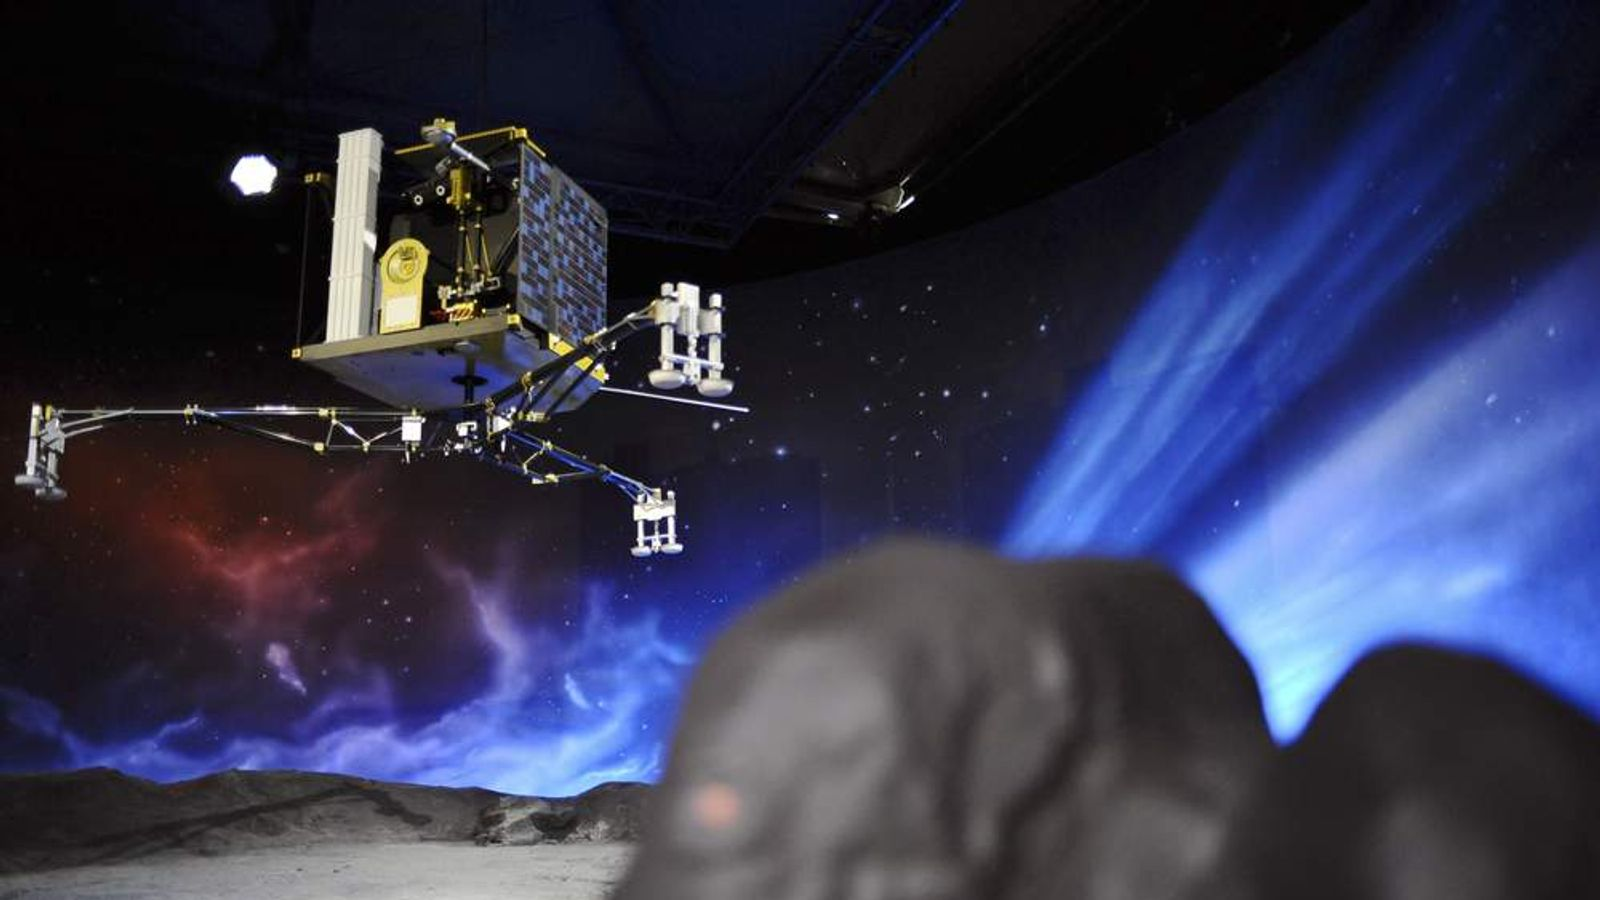 FRANCE-SPACE-EUROPE-ASTRONOMY-COMET